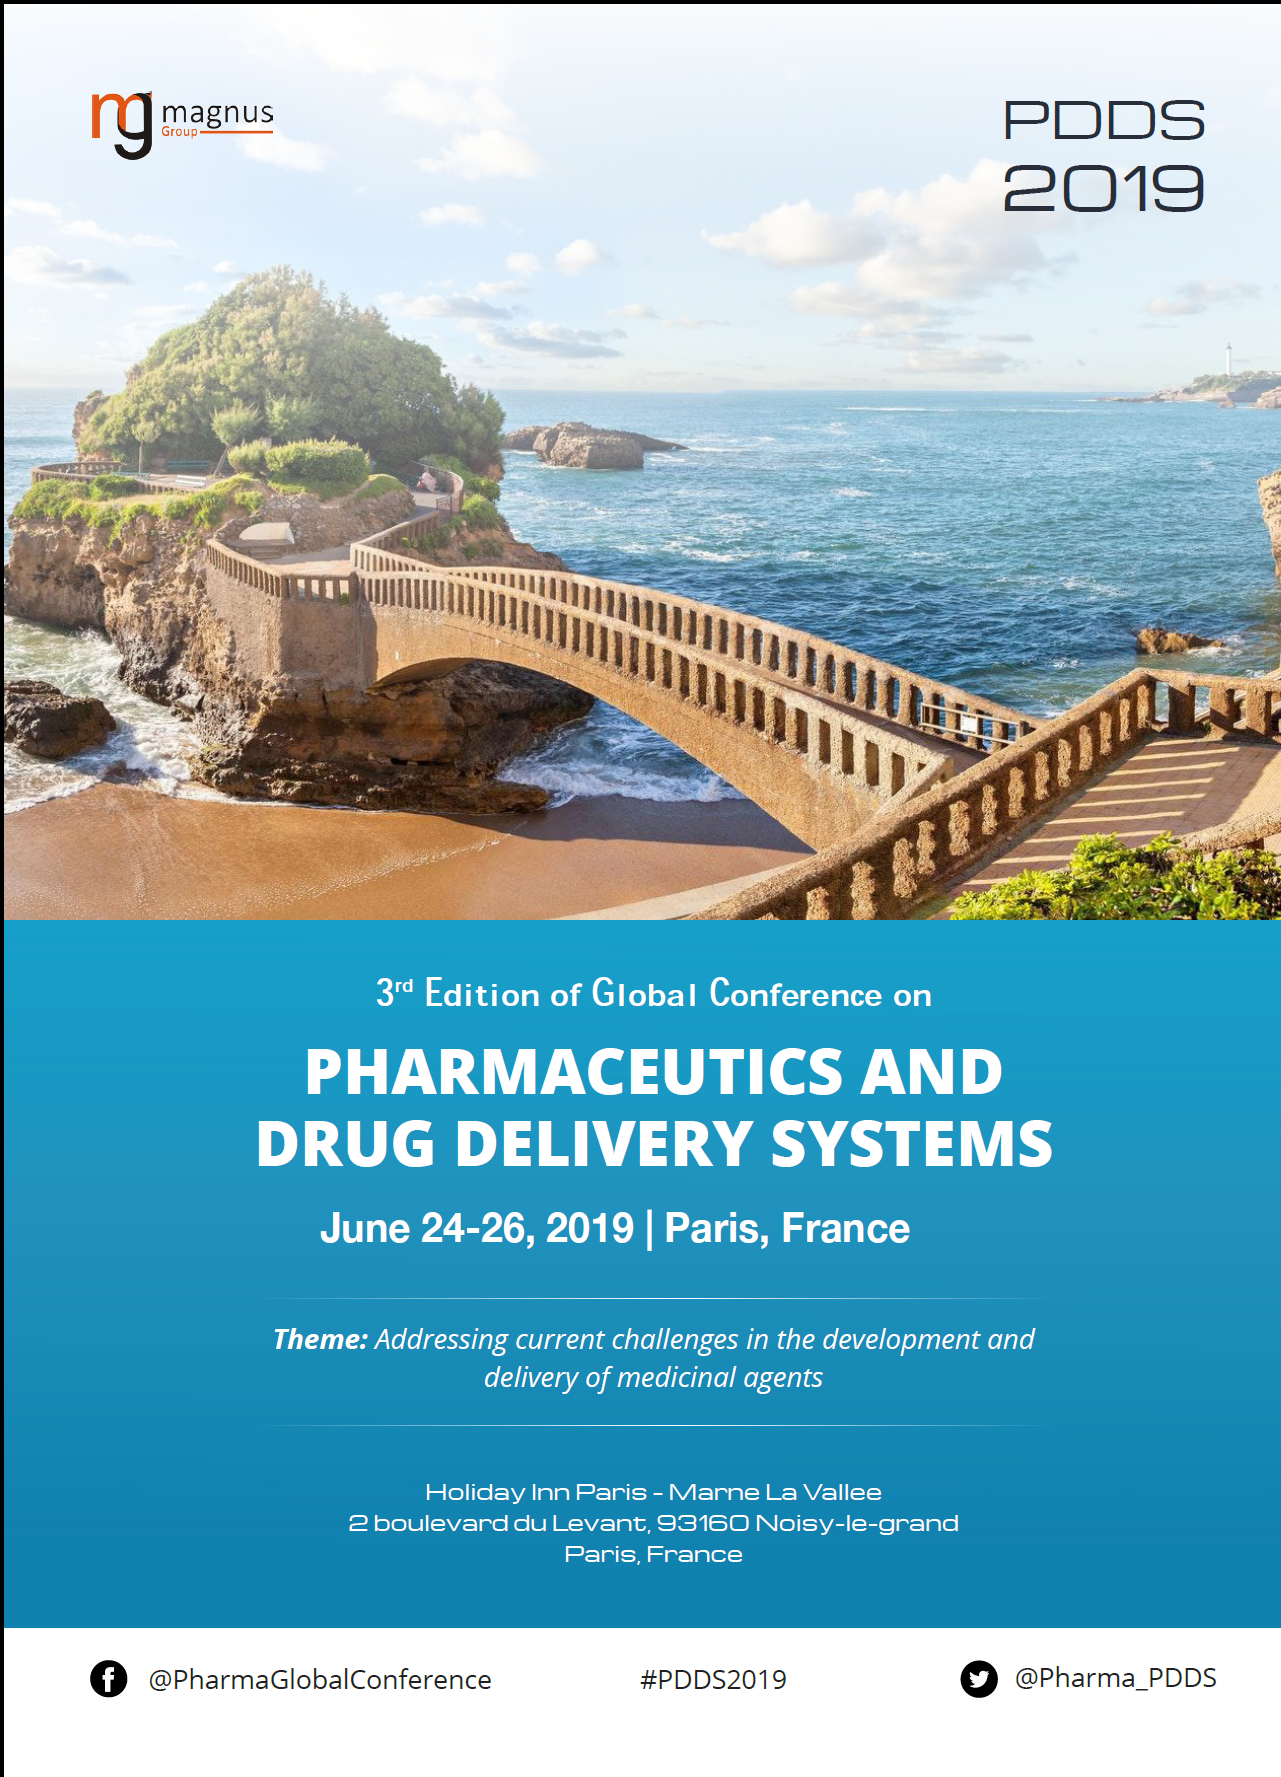 3rd Edition of Global conference on Pharmaceutics and Drug Delivery Systems | Paris, France Program